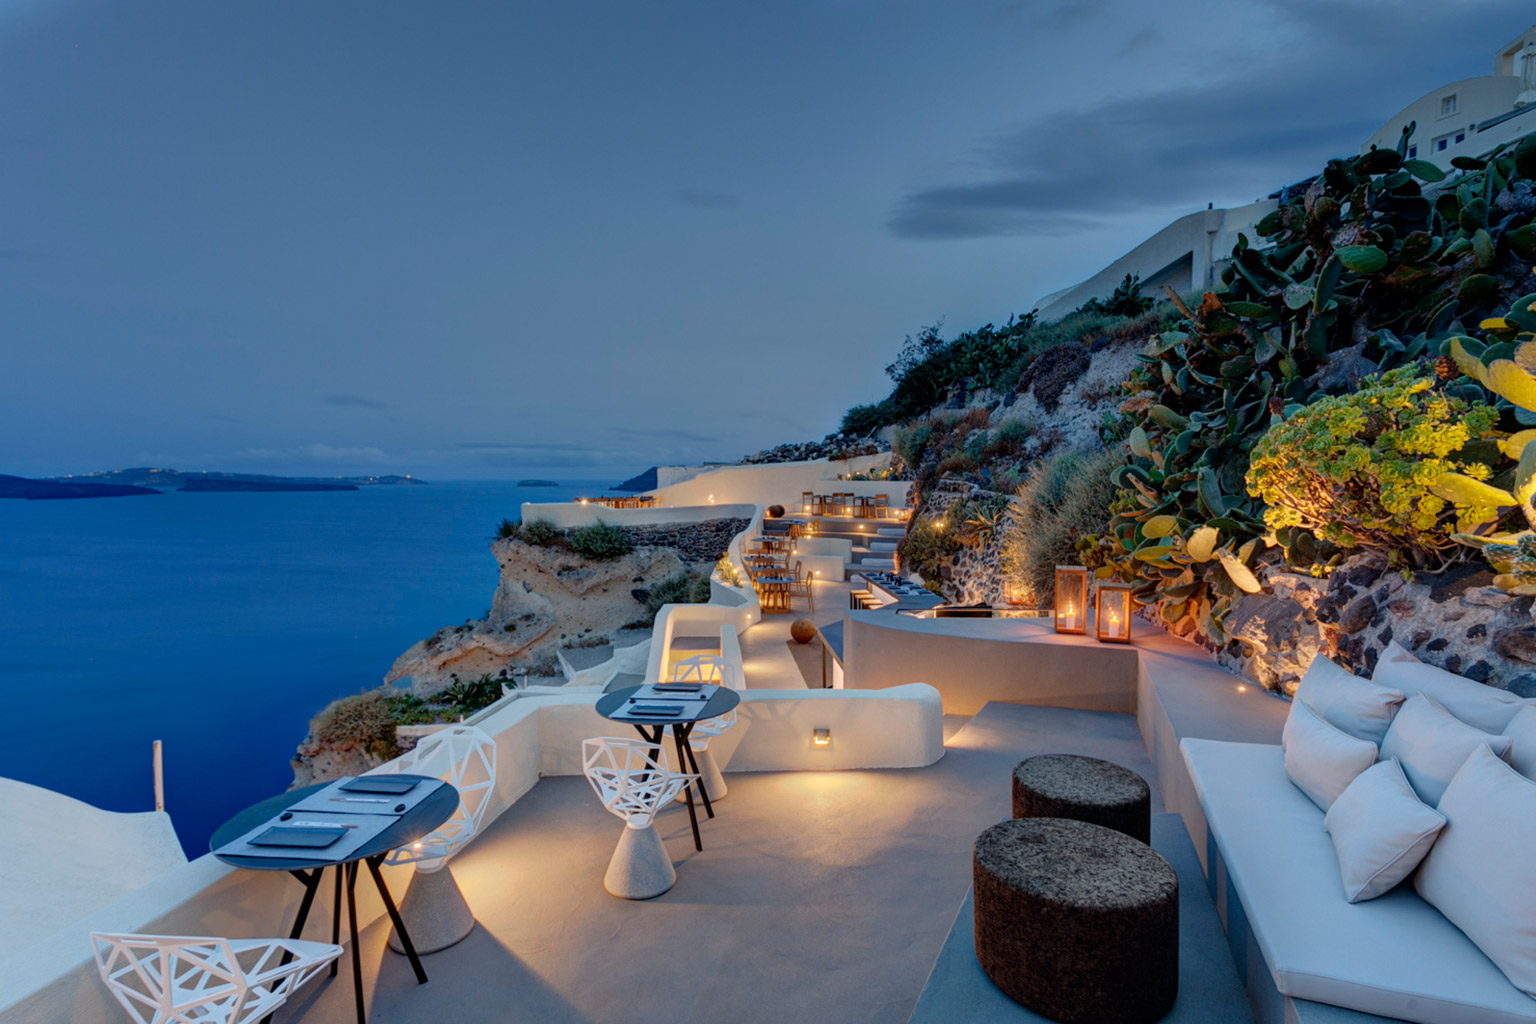 Mystique resort santorin luxushotels bei designreisen for Top hotels griechenland